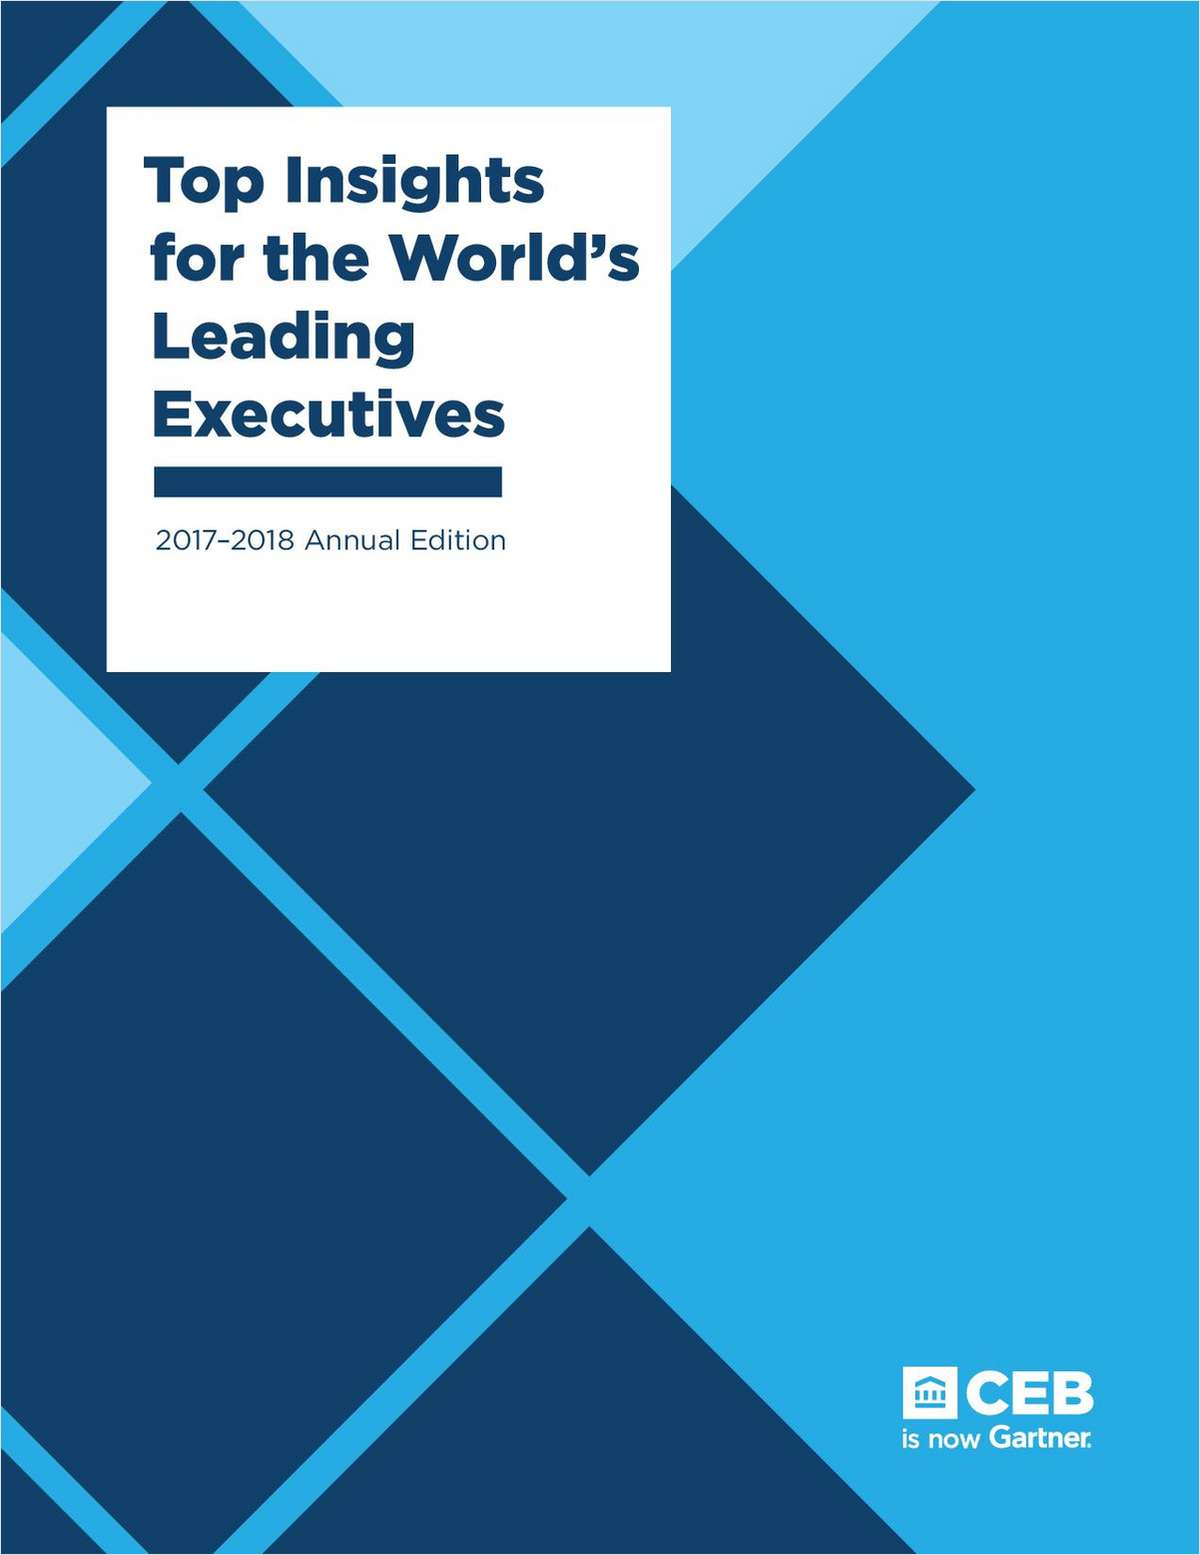 2017-2018 Top Insights for Human Resources